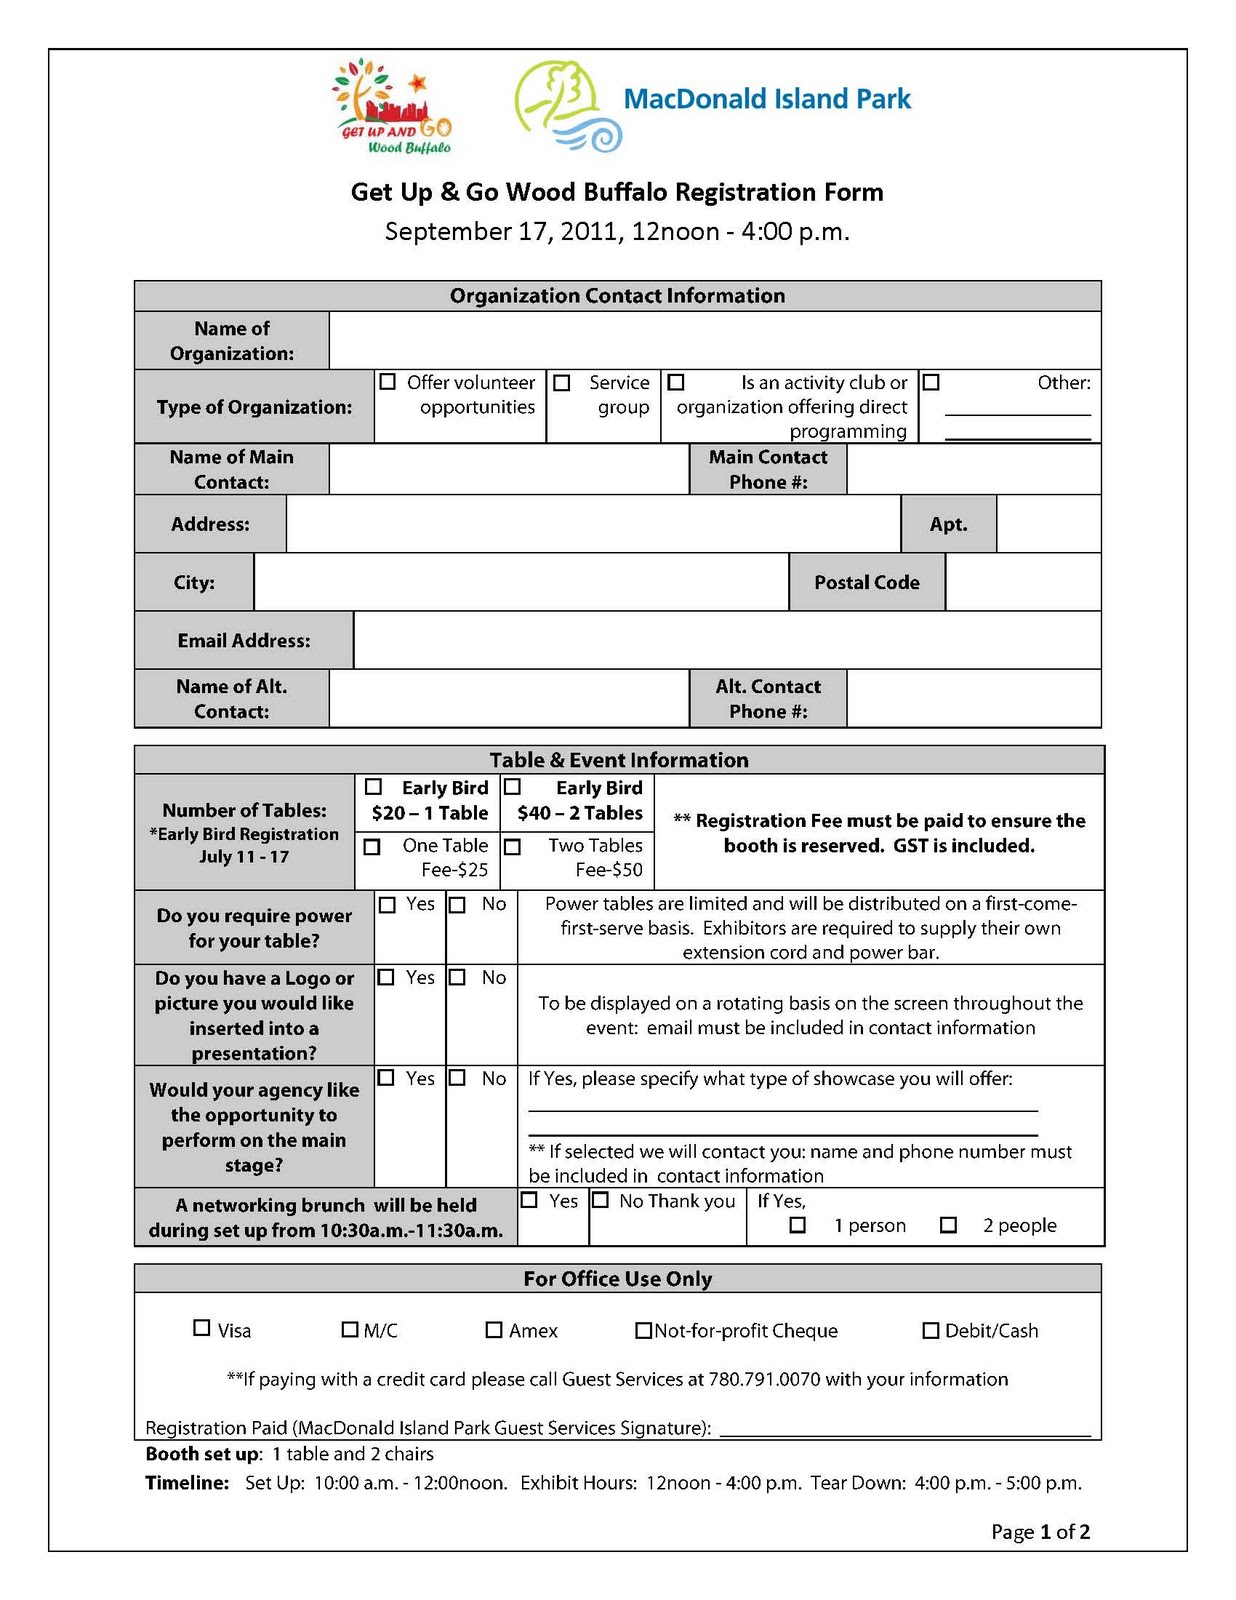 Free School Application Form what is salary advice agreement for – Free Registration Form Template Word